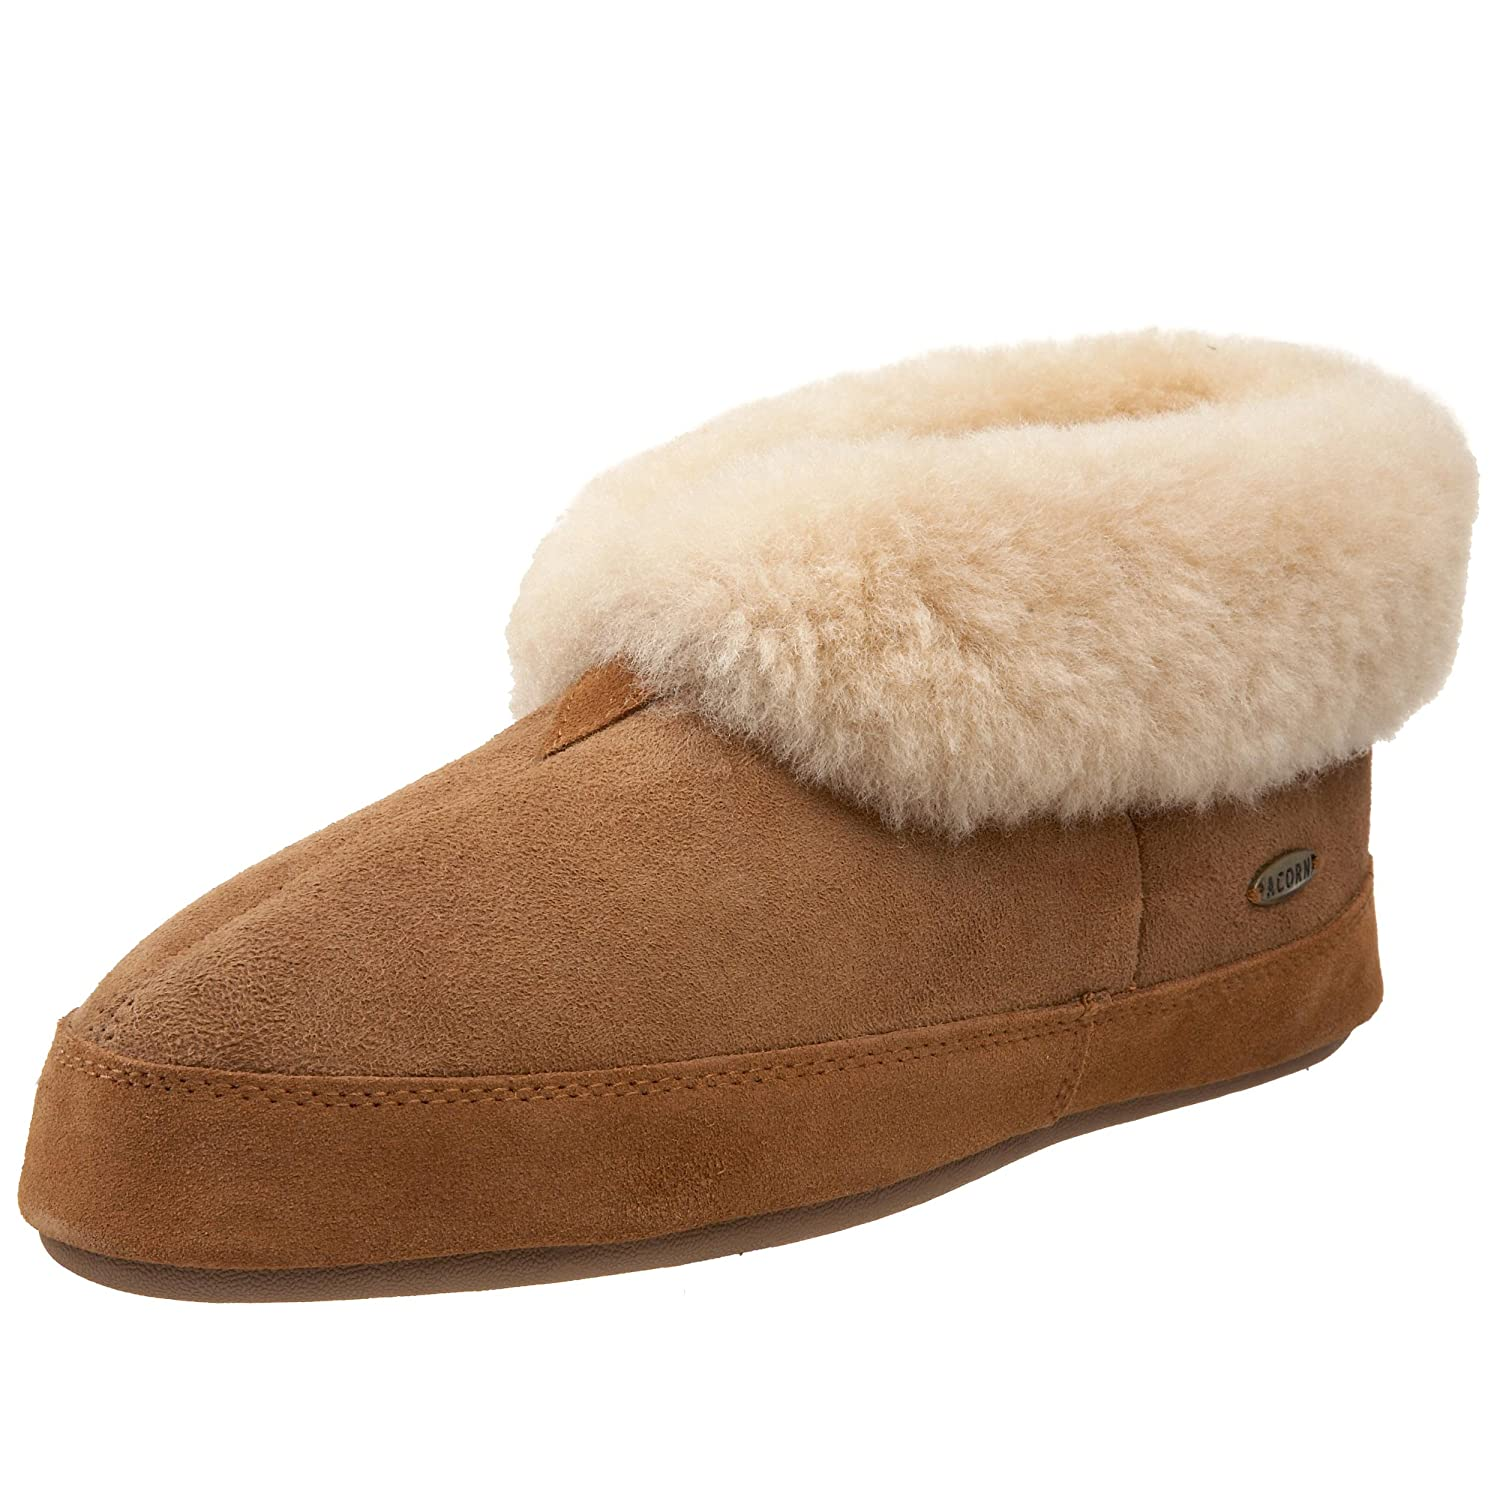 bedroom new mens lined size outdoor suede moccasin faux s fleece dp house wool indoor men plush micro shoes hampshire slippers fur